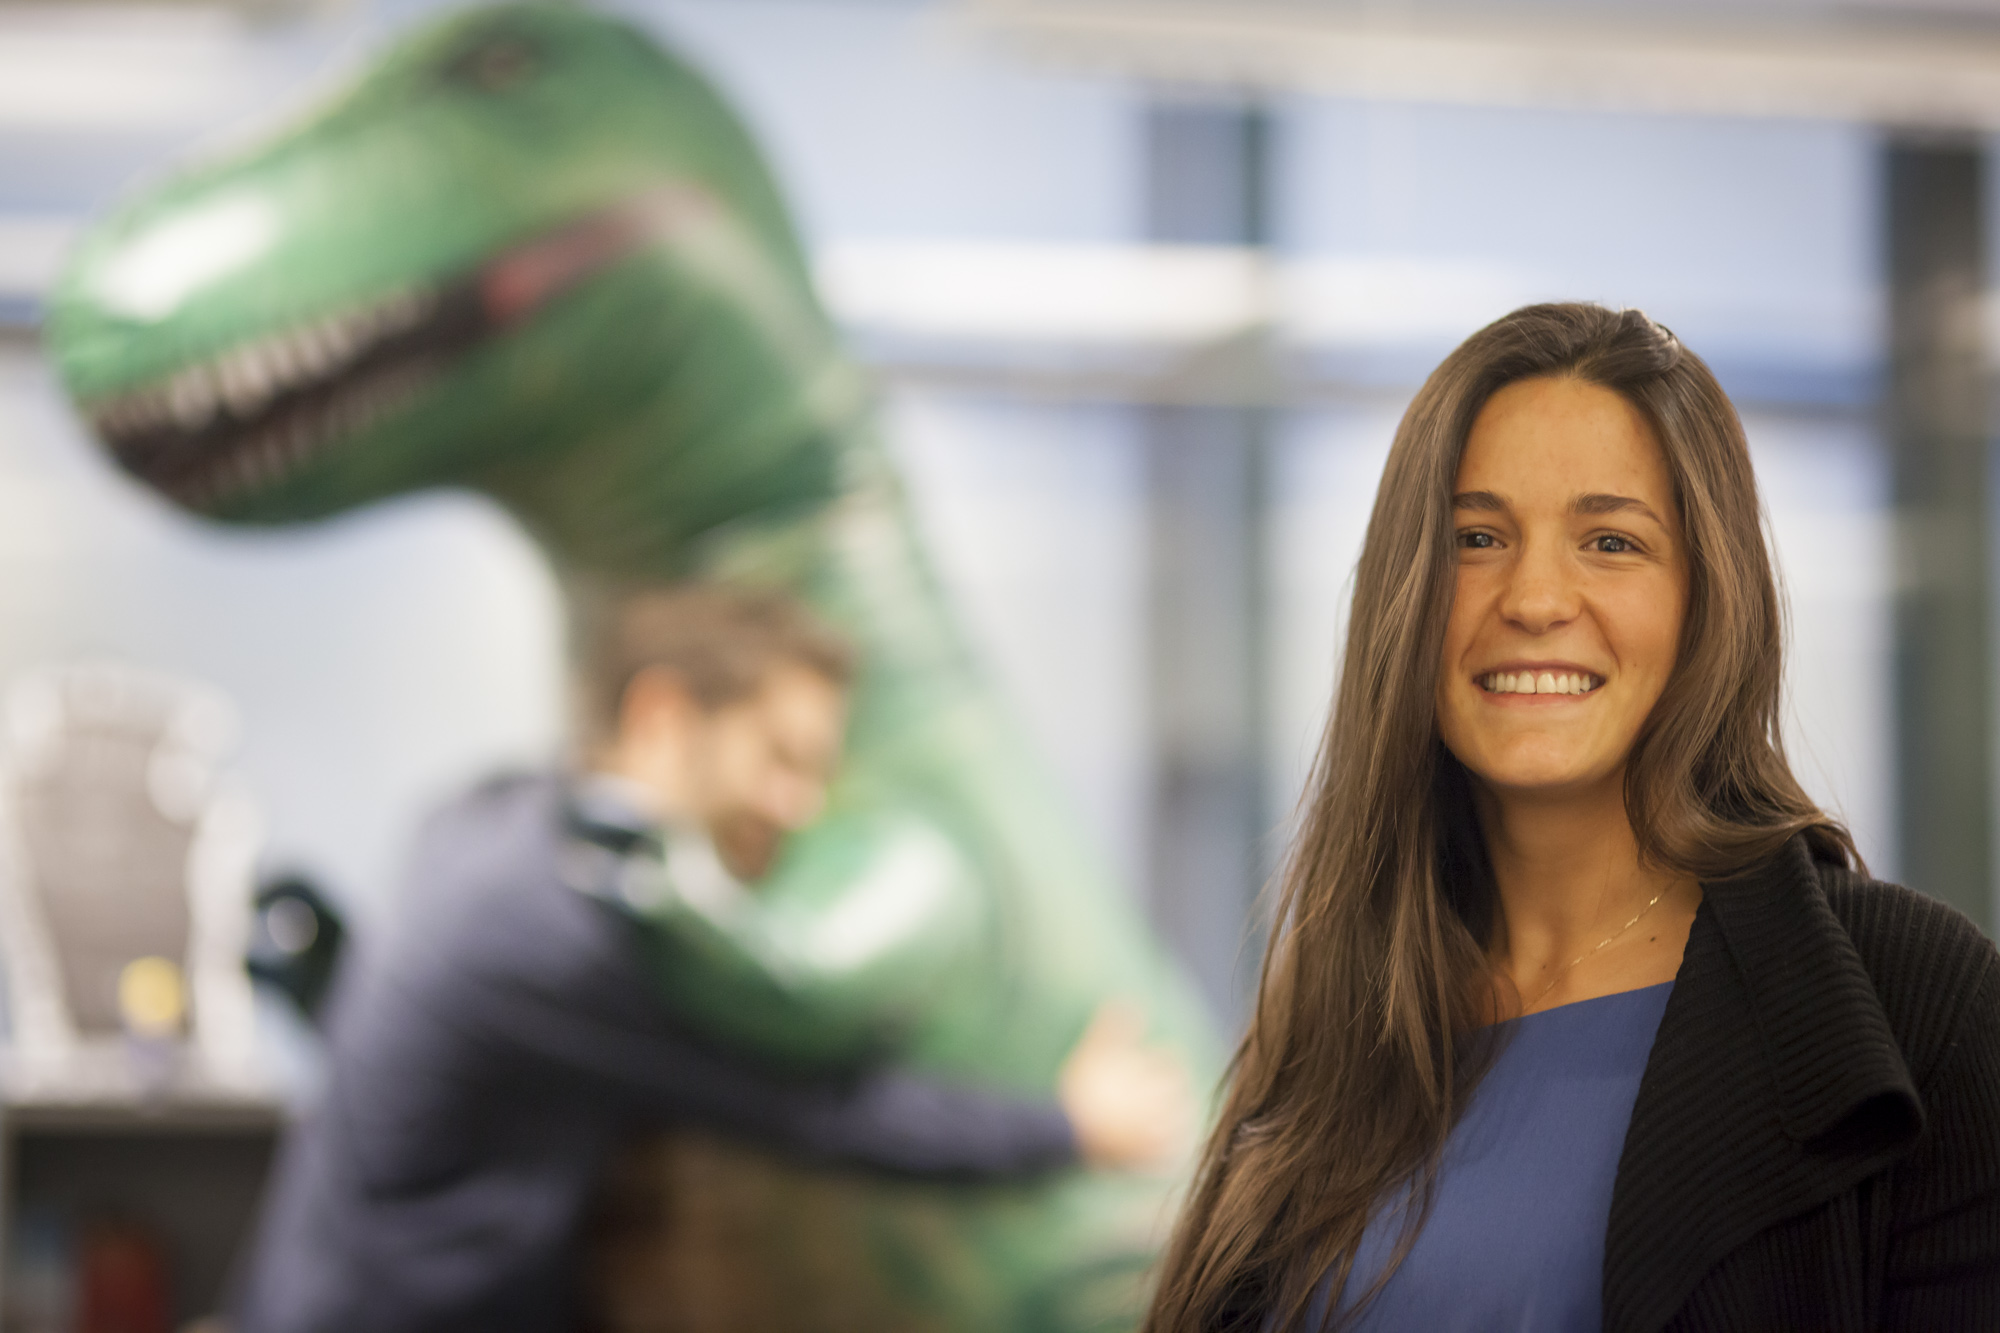 Ana Vizcarrondo is a software engineer for Schibsted Products & Technology in Oslo